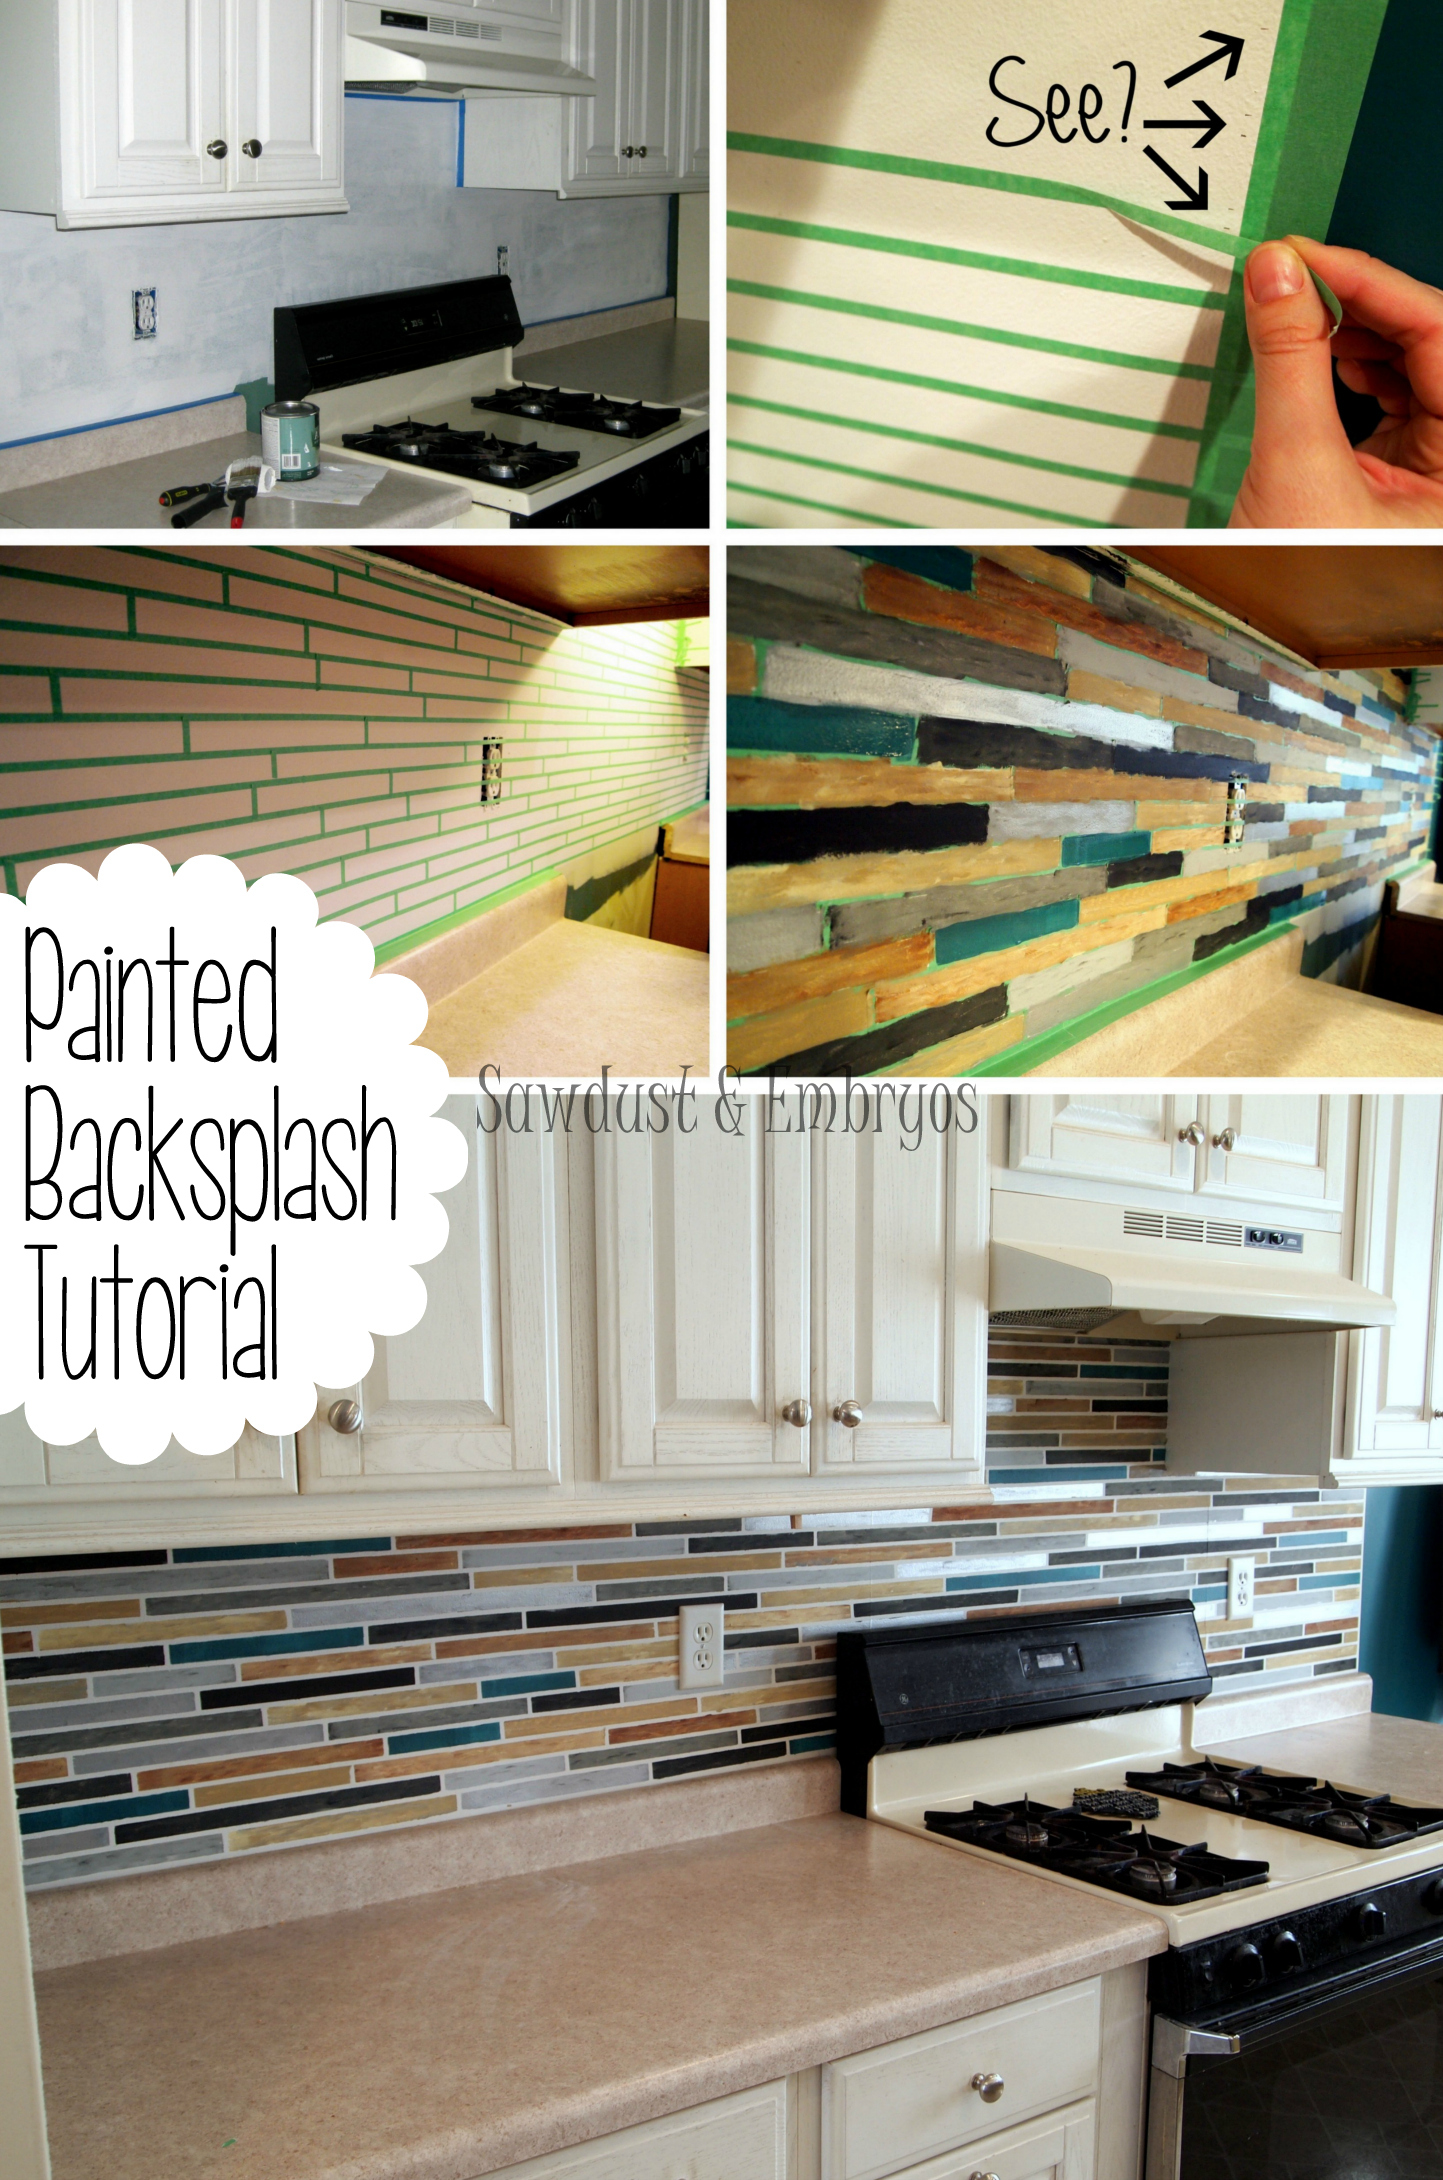 PAINT your backsplash to look like custom tile! {Sawdust & Embryos}